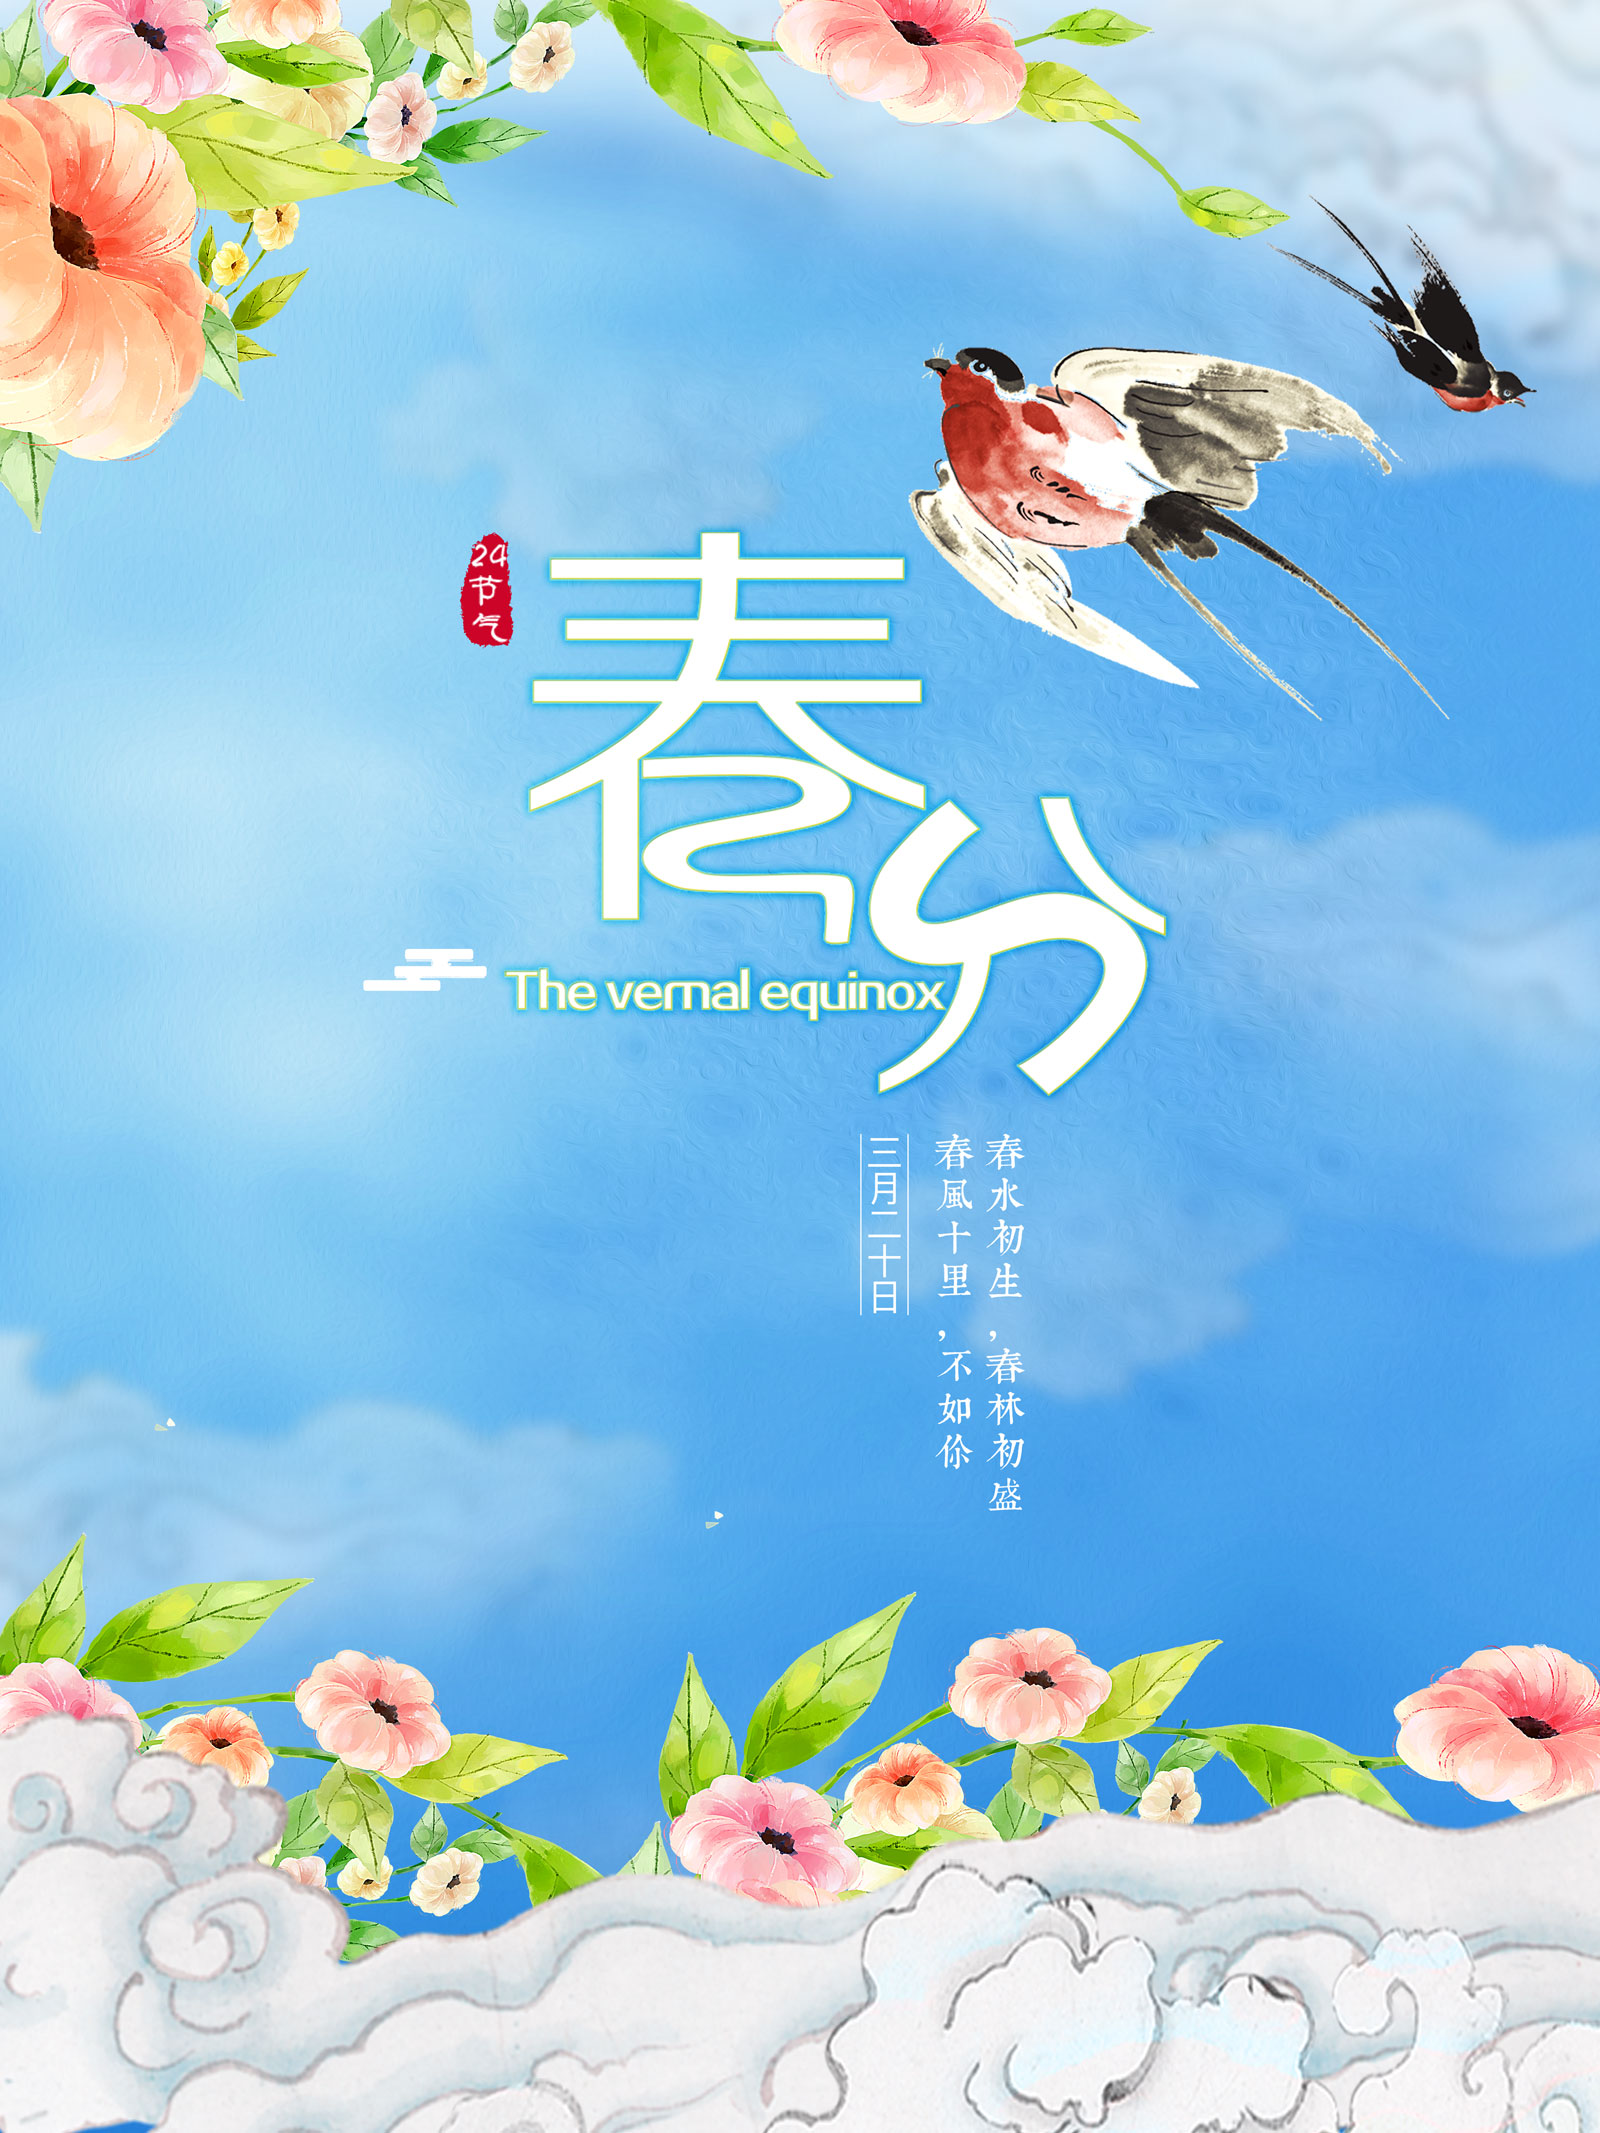 Spring Part of the weather poster PSD picture Free Download